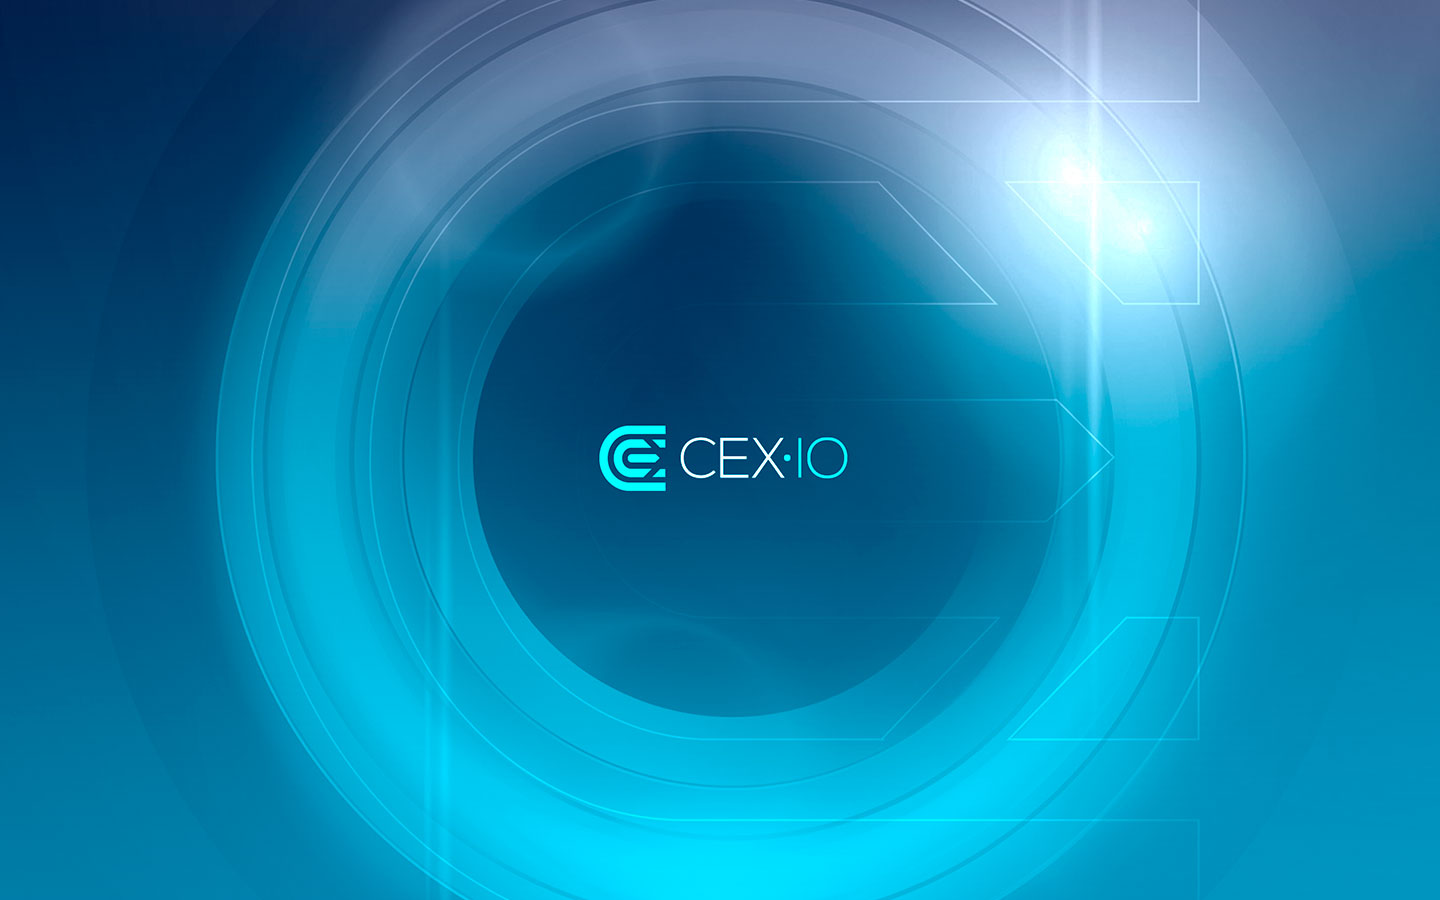 cex.io exchange coinmama exchange Binance Bitcoin Exchange EXMO.com Cryptocurrency exchange Poloniex Cryptocurrency Exchange CEX.IO CEX.IO Worldwide Bitcoin ExchangeTrezor Ledger Model T Tokens Net Platform Binance Crypto Currency Exchange Local Bitcoins servicetrading Buybit BTC Exchange Trezor One Metallic Bitcoin Litecoin Dash XRP and more. Explore the thousands of crypto Trezor Model T currencies in our crypto database ETH ETHEREUM BYTCION COIN Crypto currency personal service